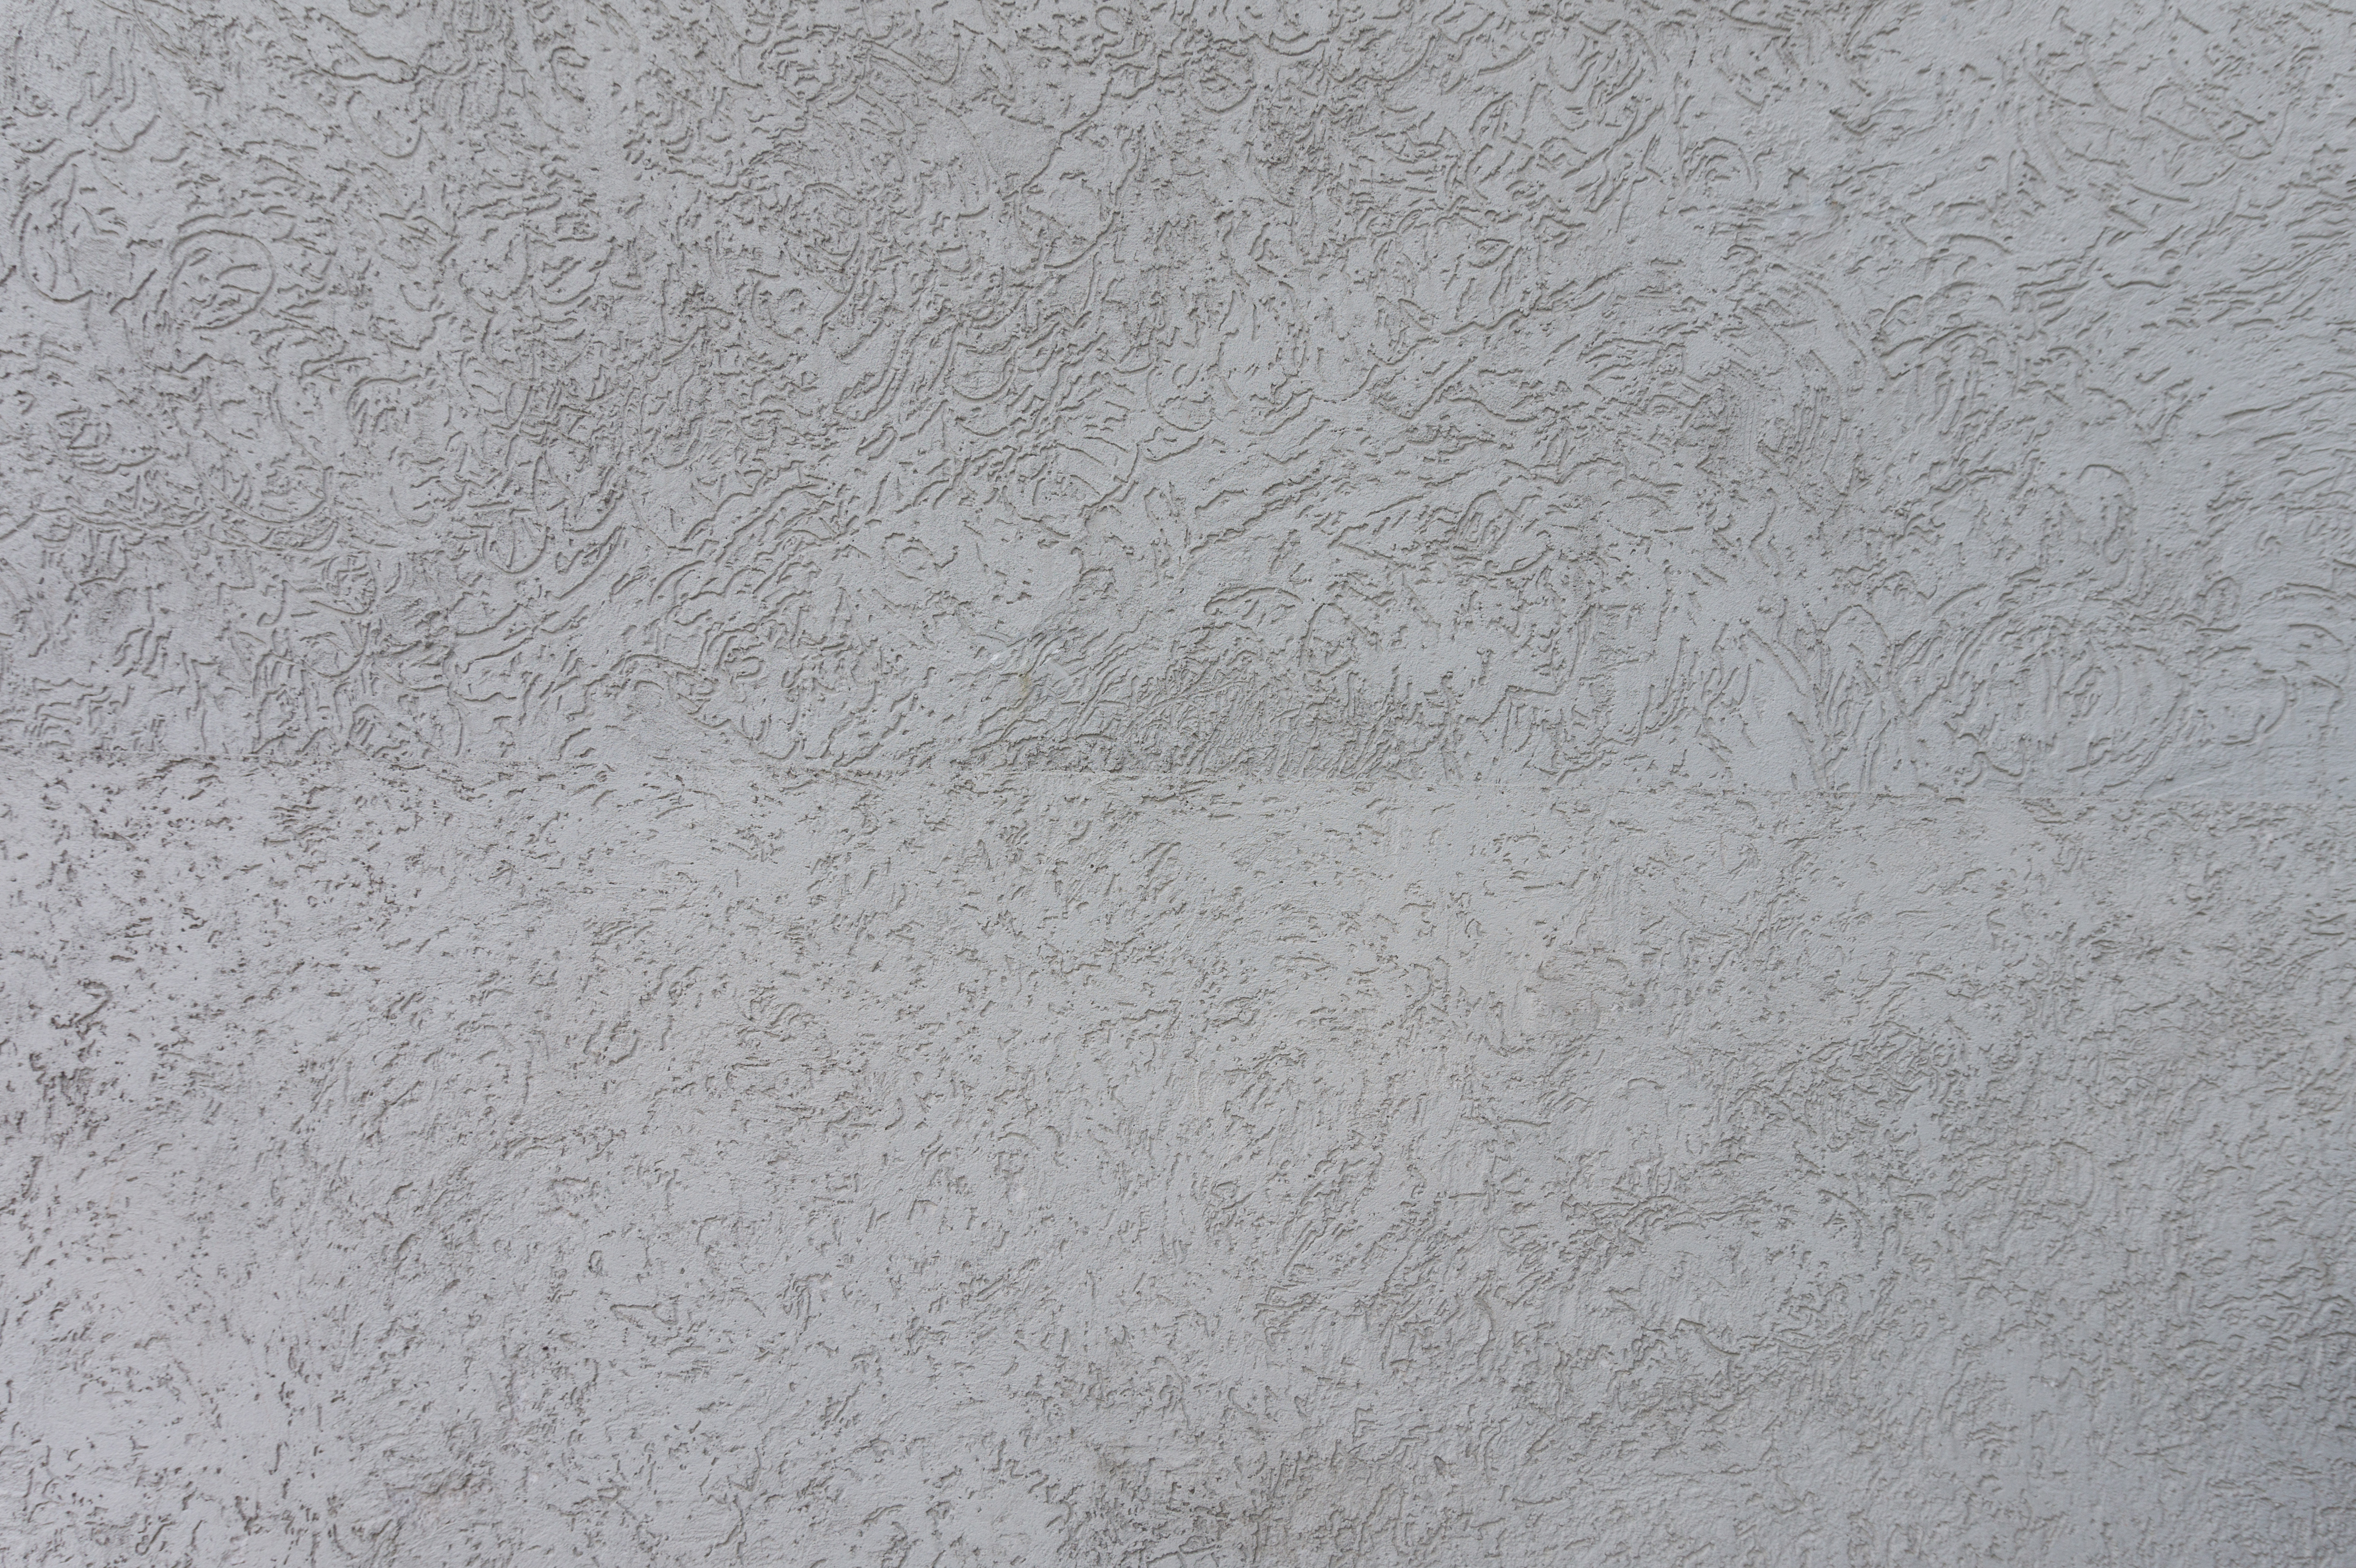 Slightly Patterned Plaster Wall Concrete Texturify